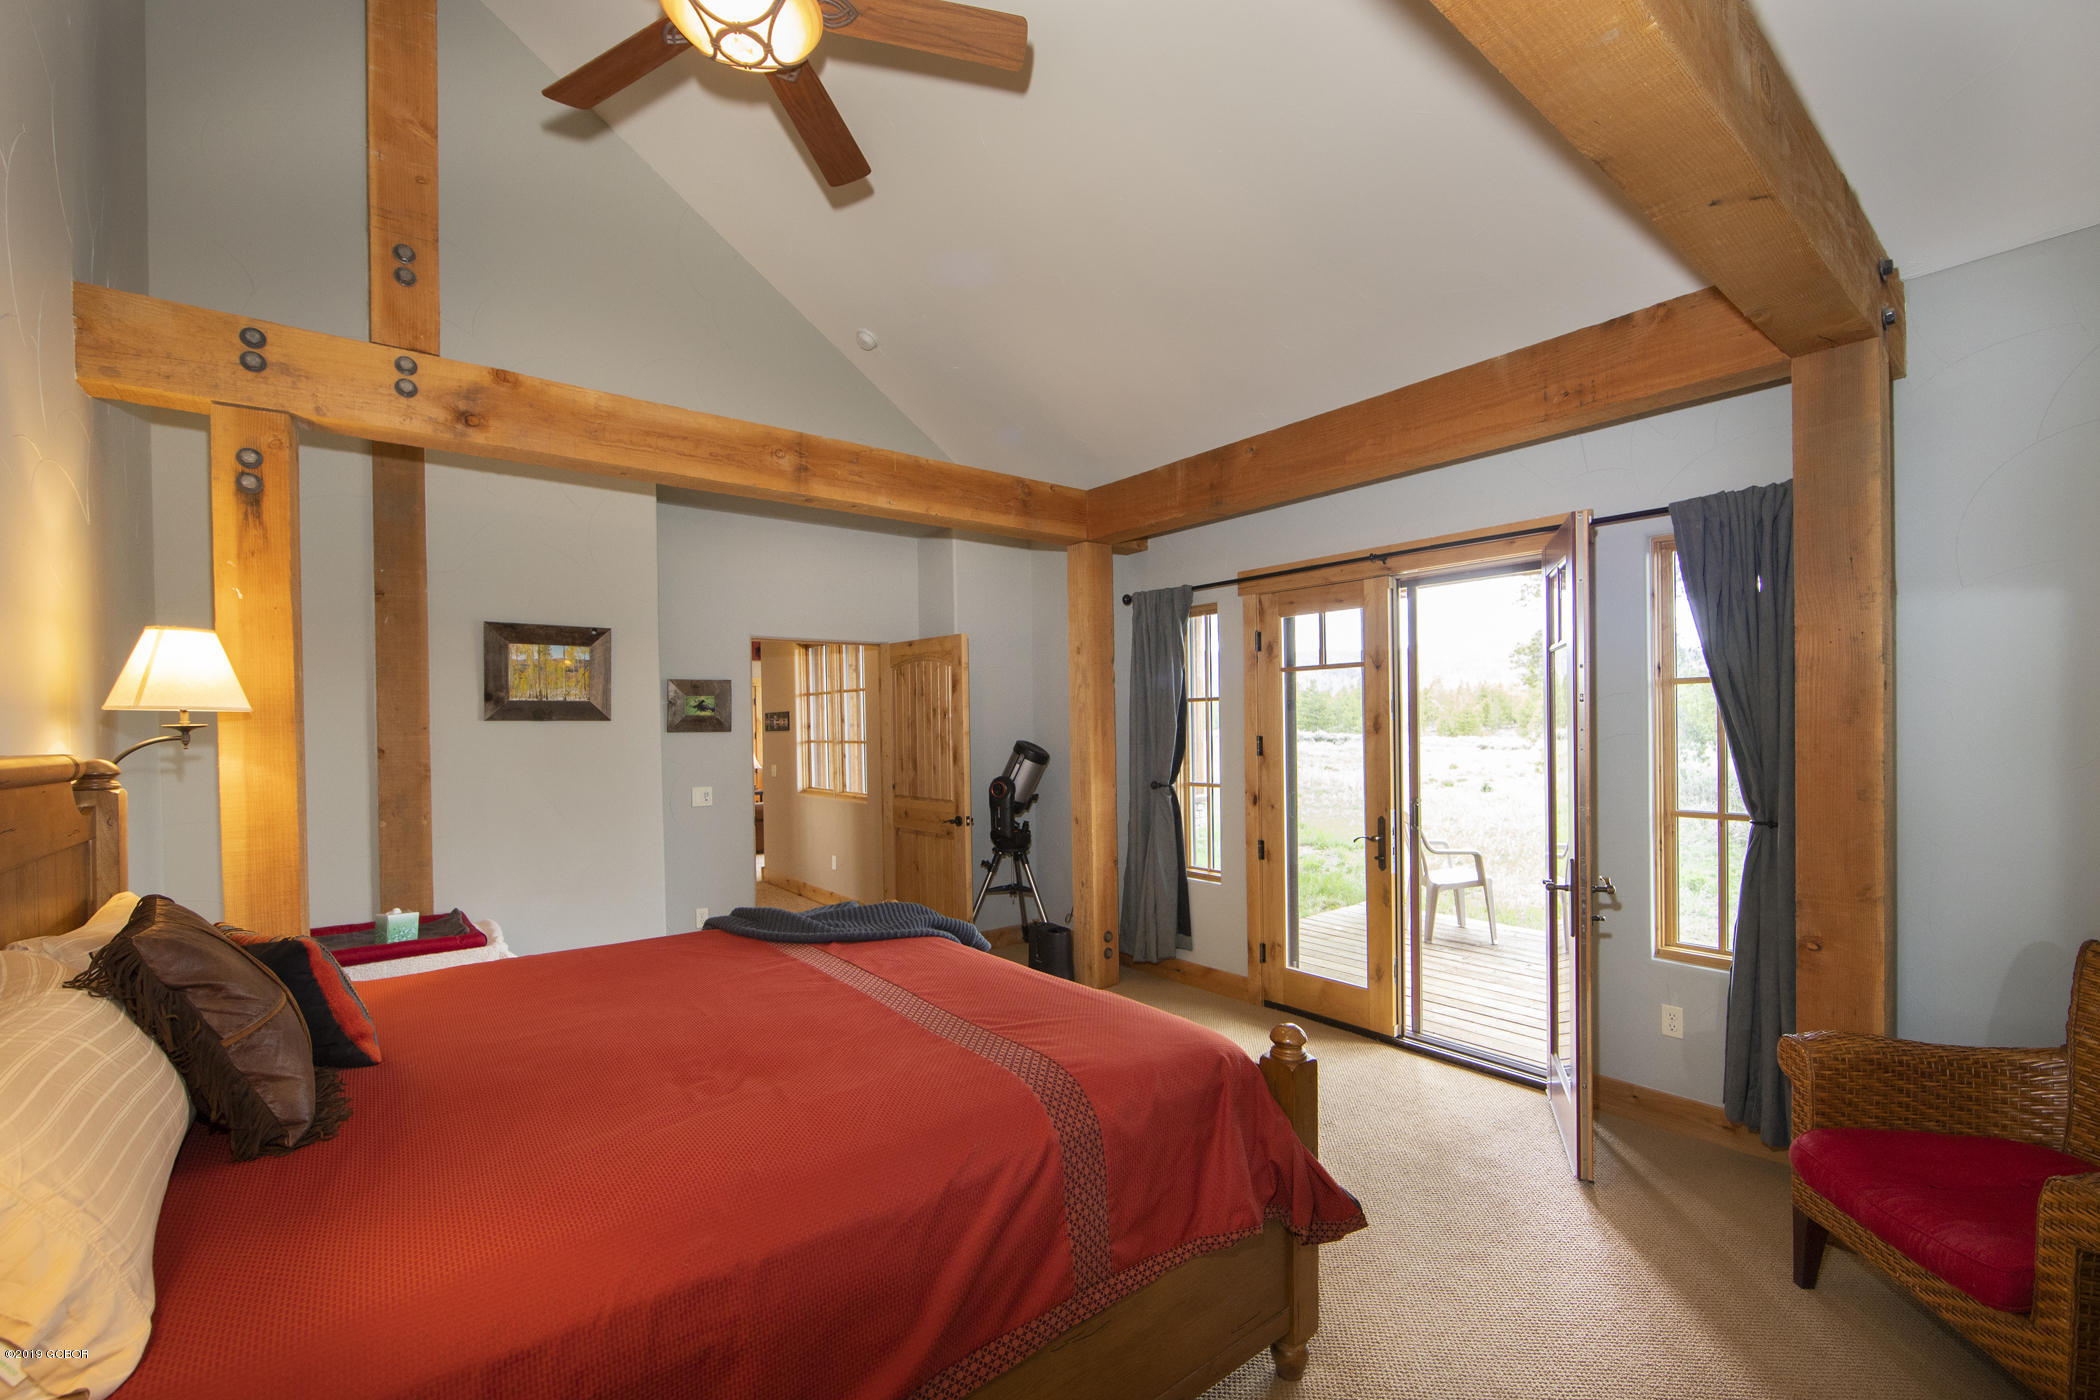 MLS# 19-704 - 20 - 612 County Rd 6237  #, Granby, CO 80446